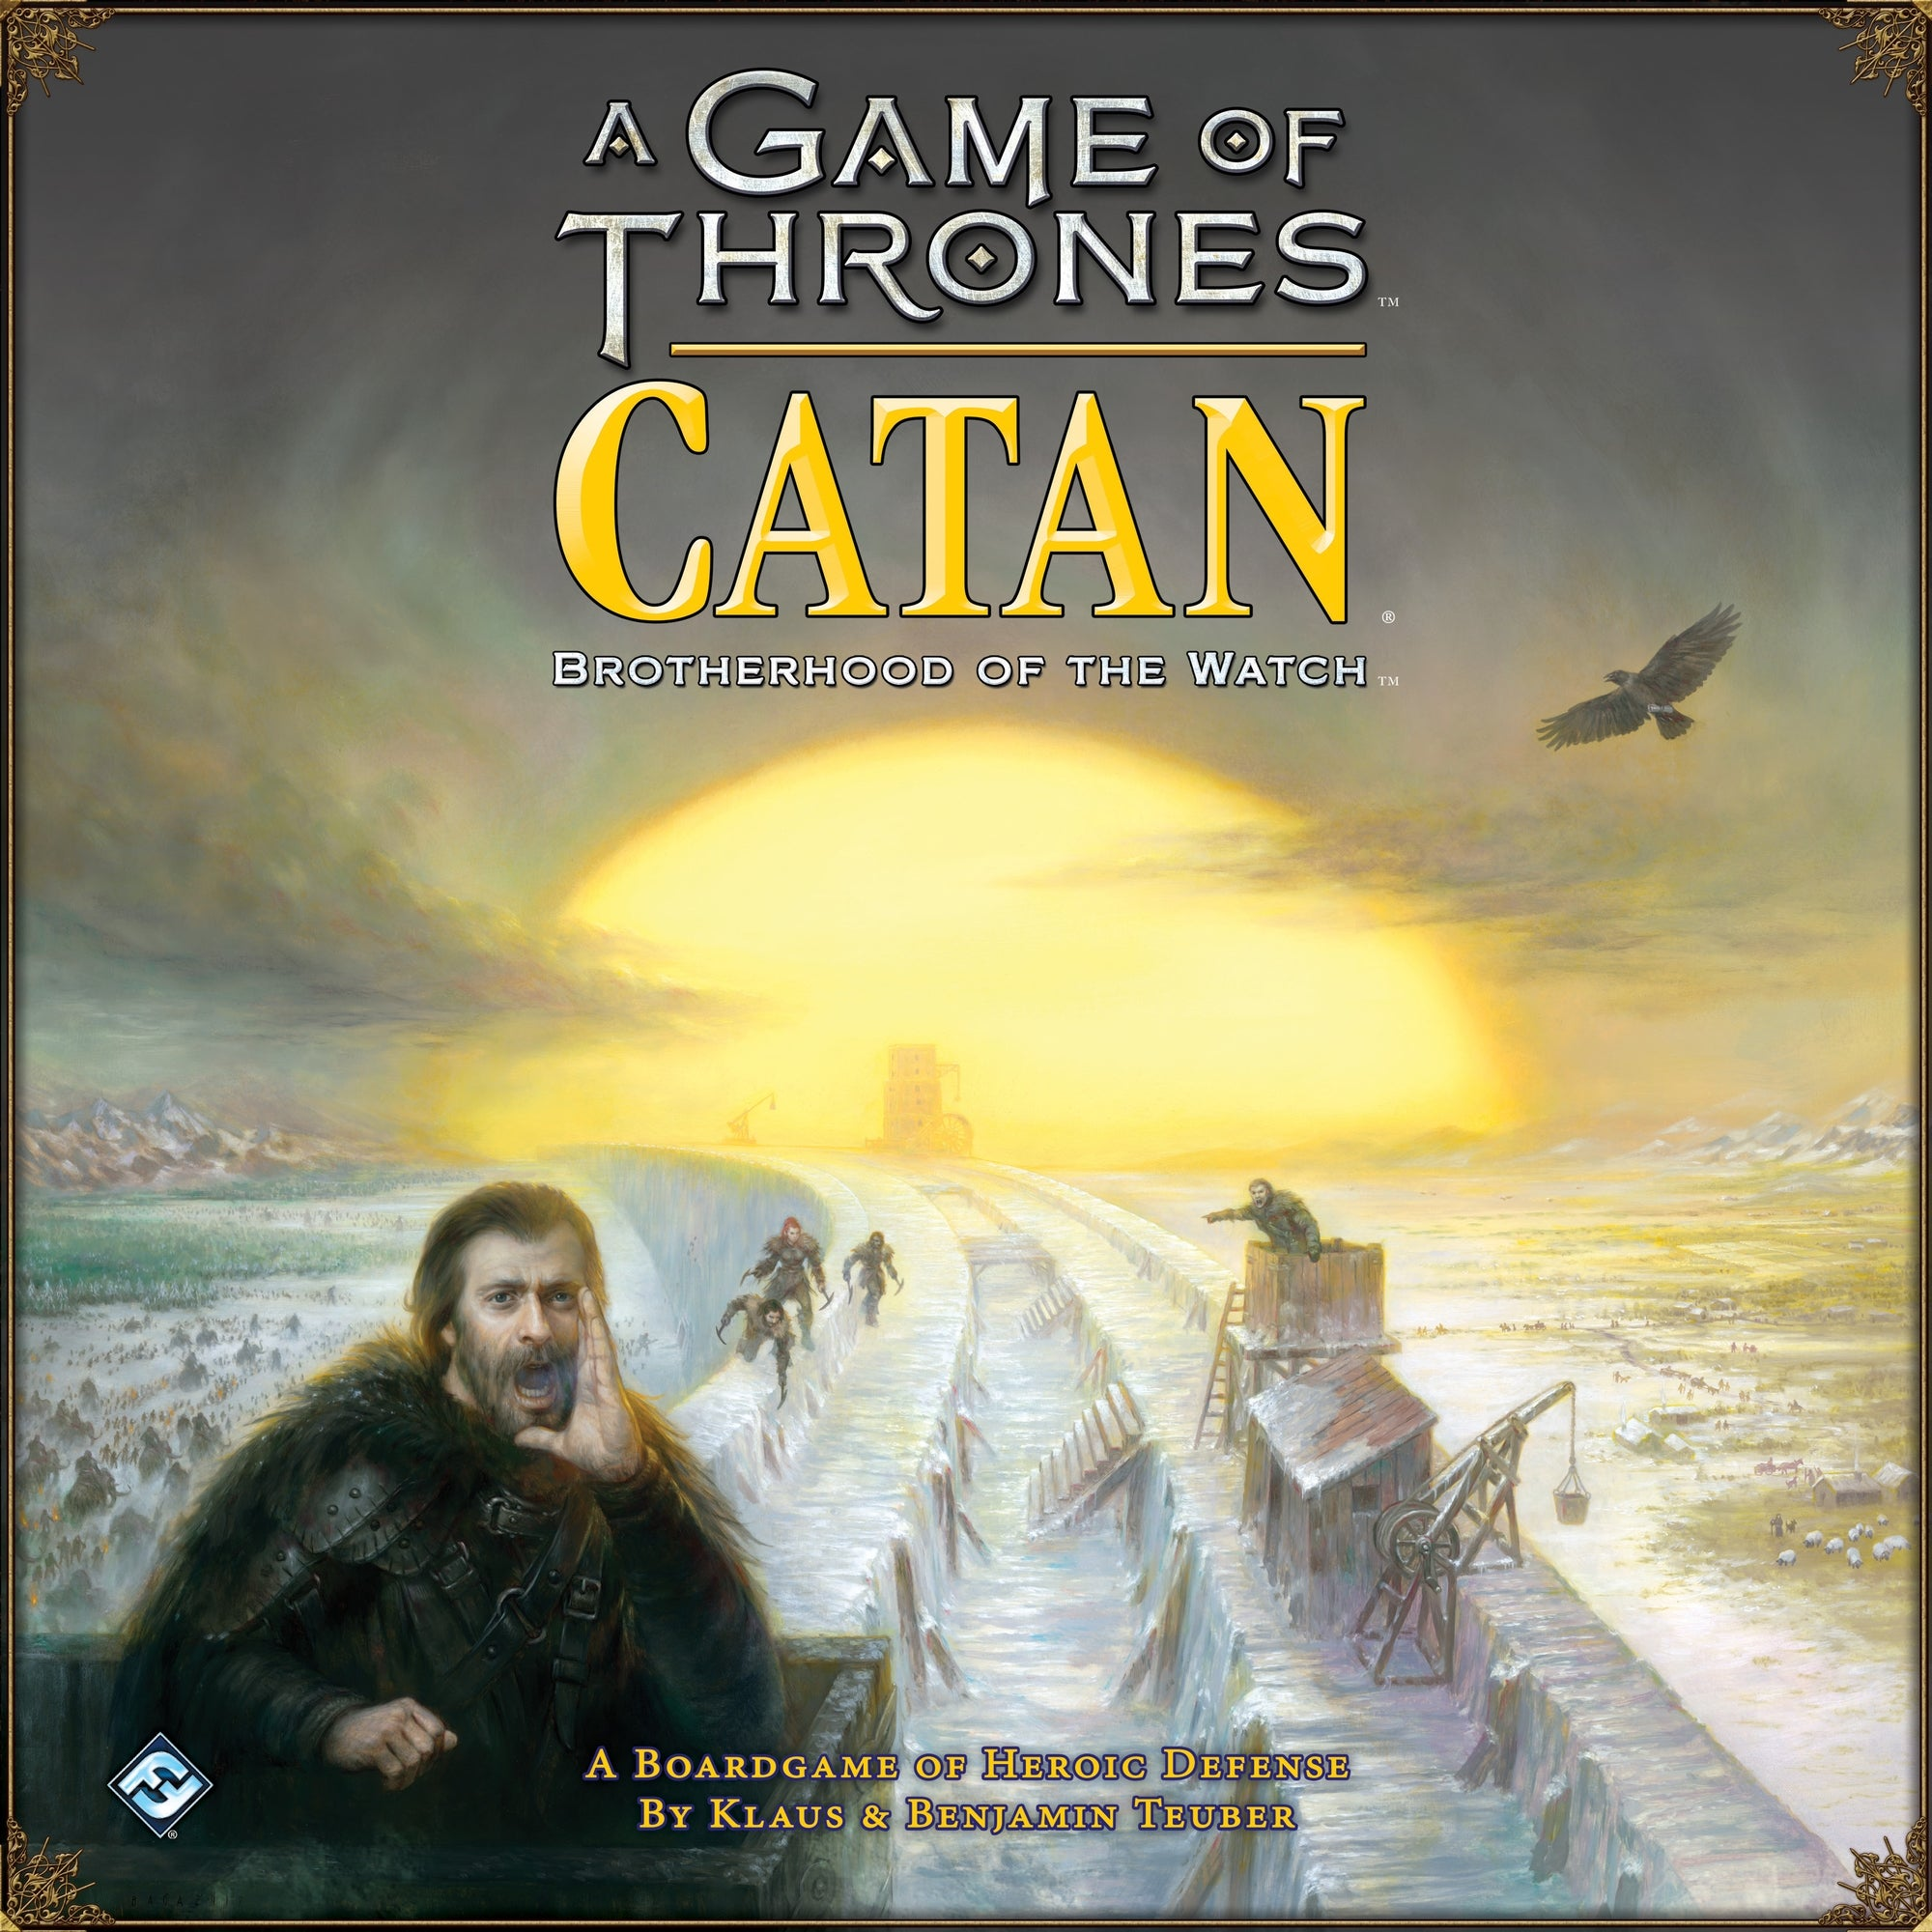 A Game of Thrones - Catan